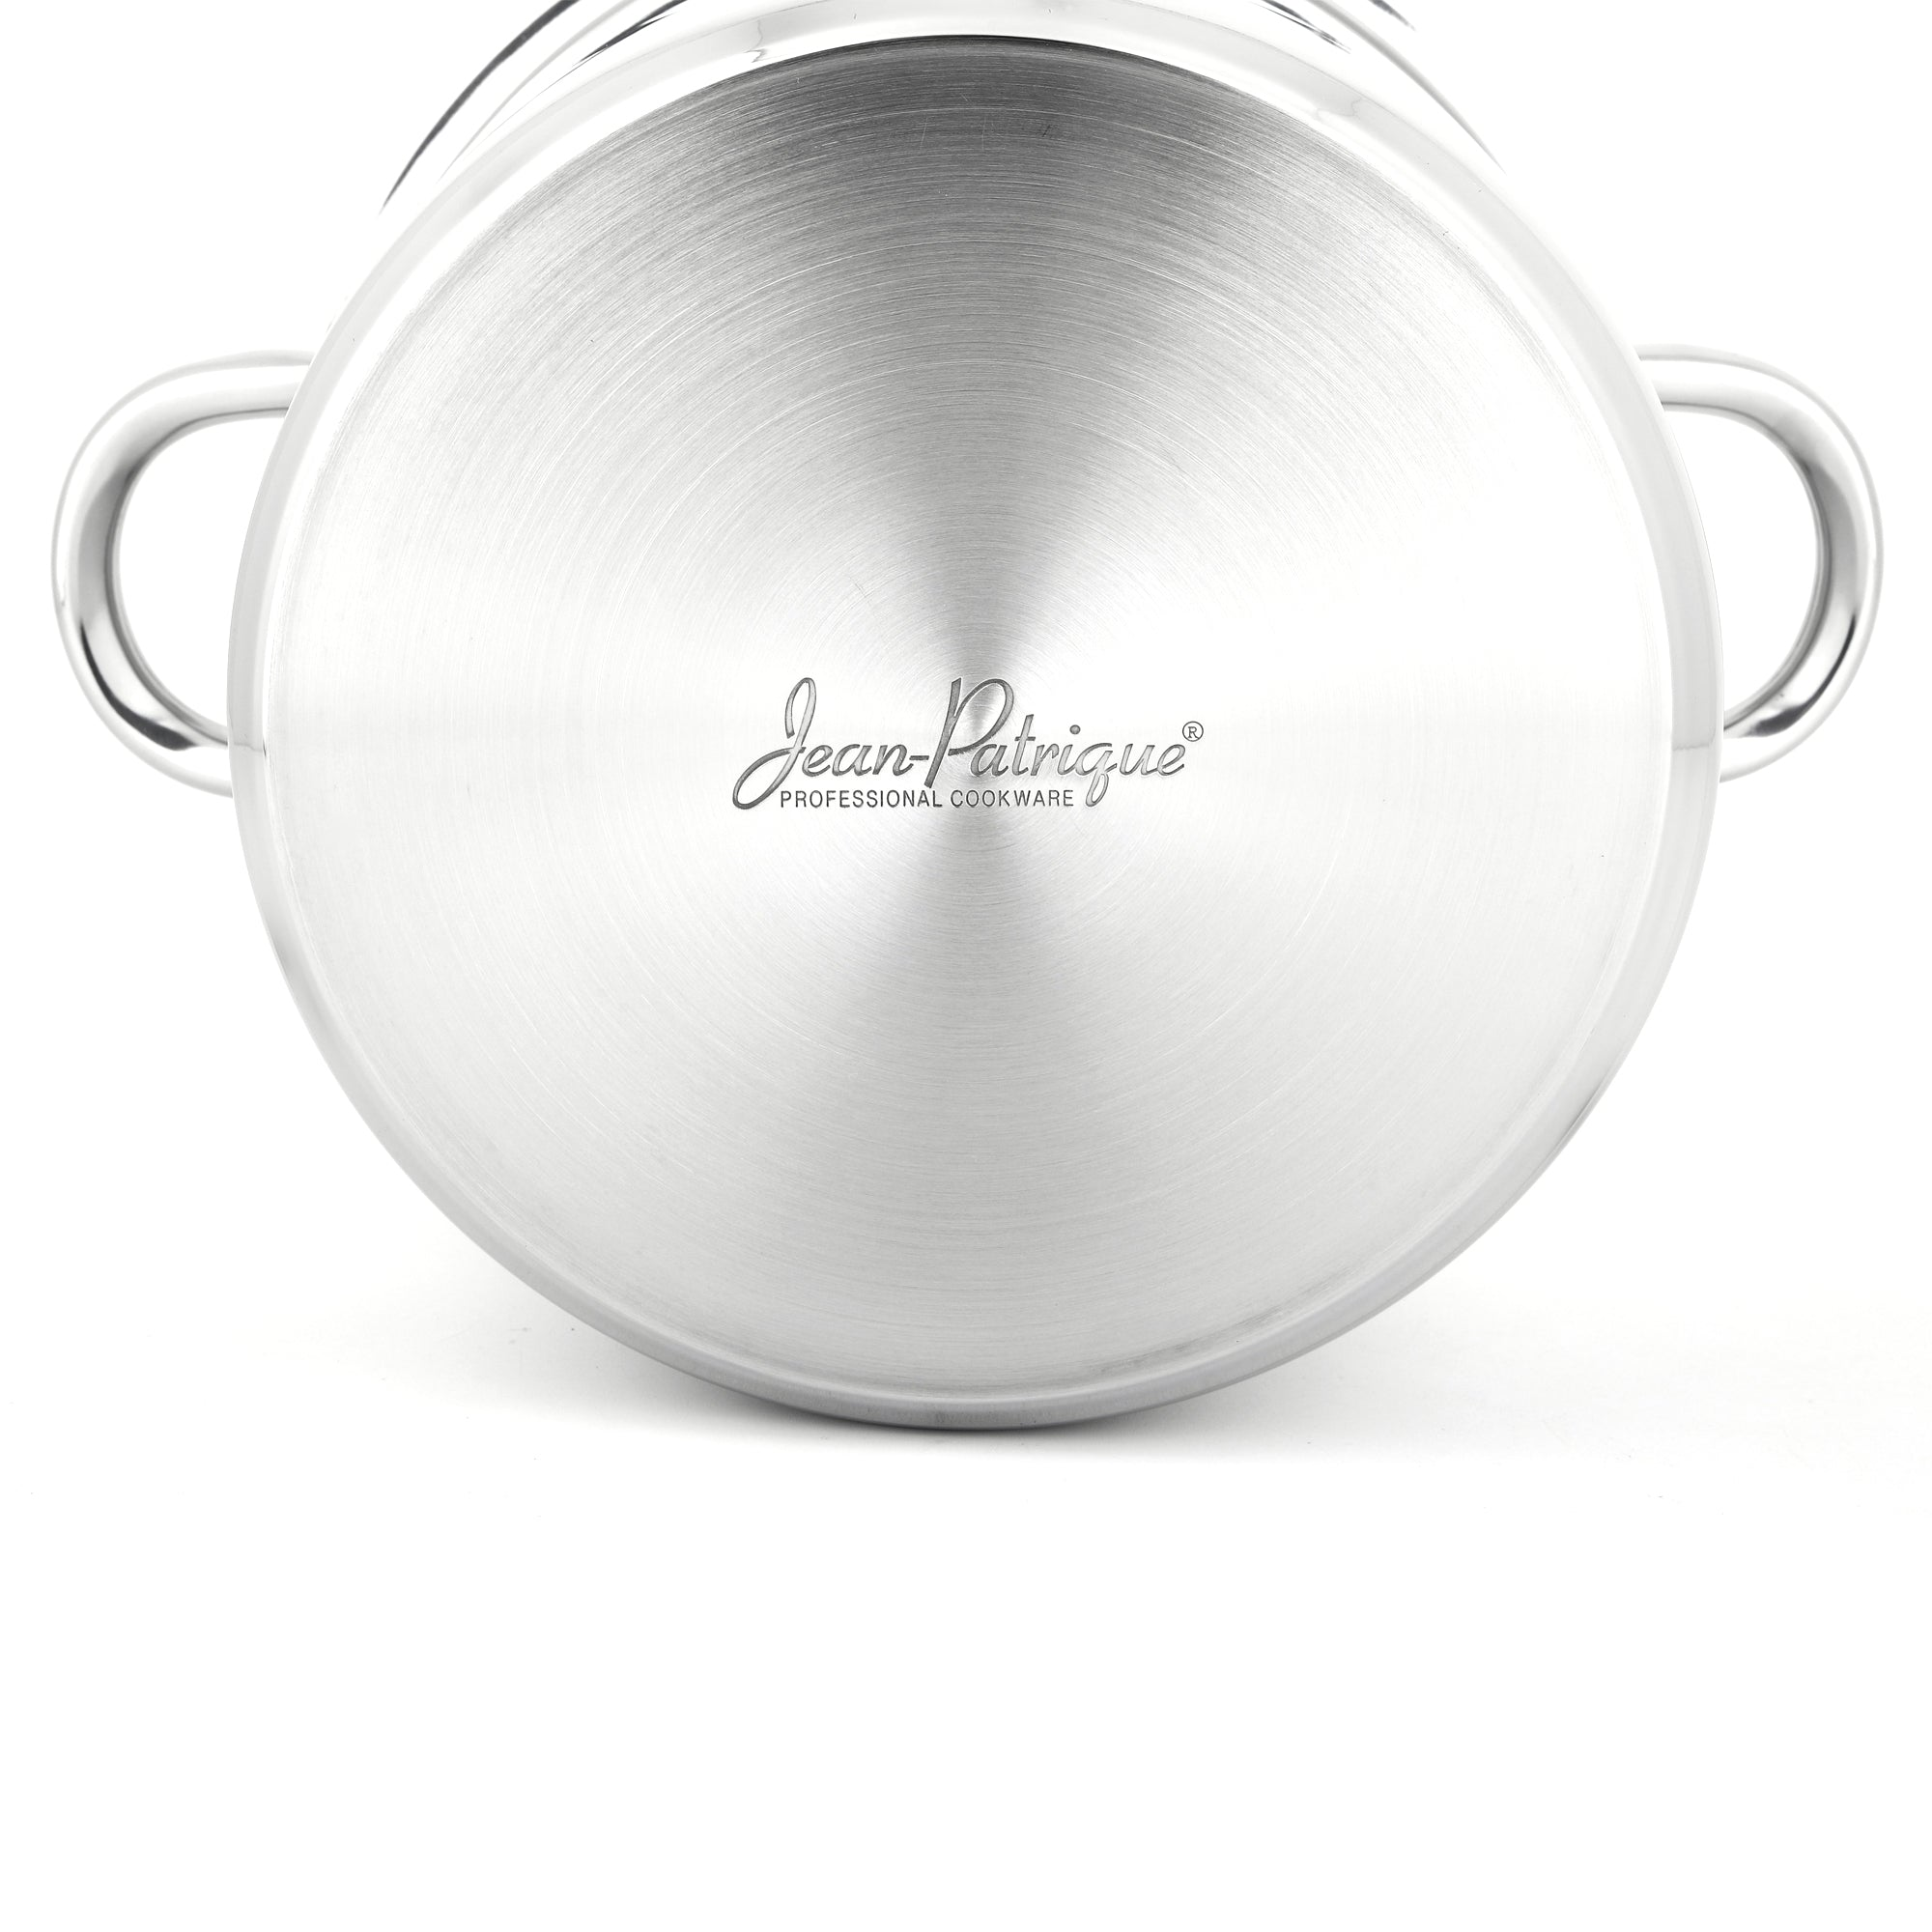 24cm Stainless Steel Stockpot with Lid